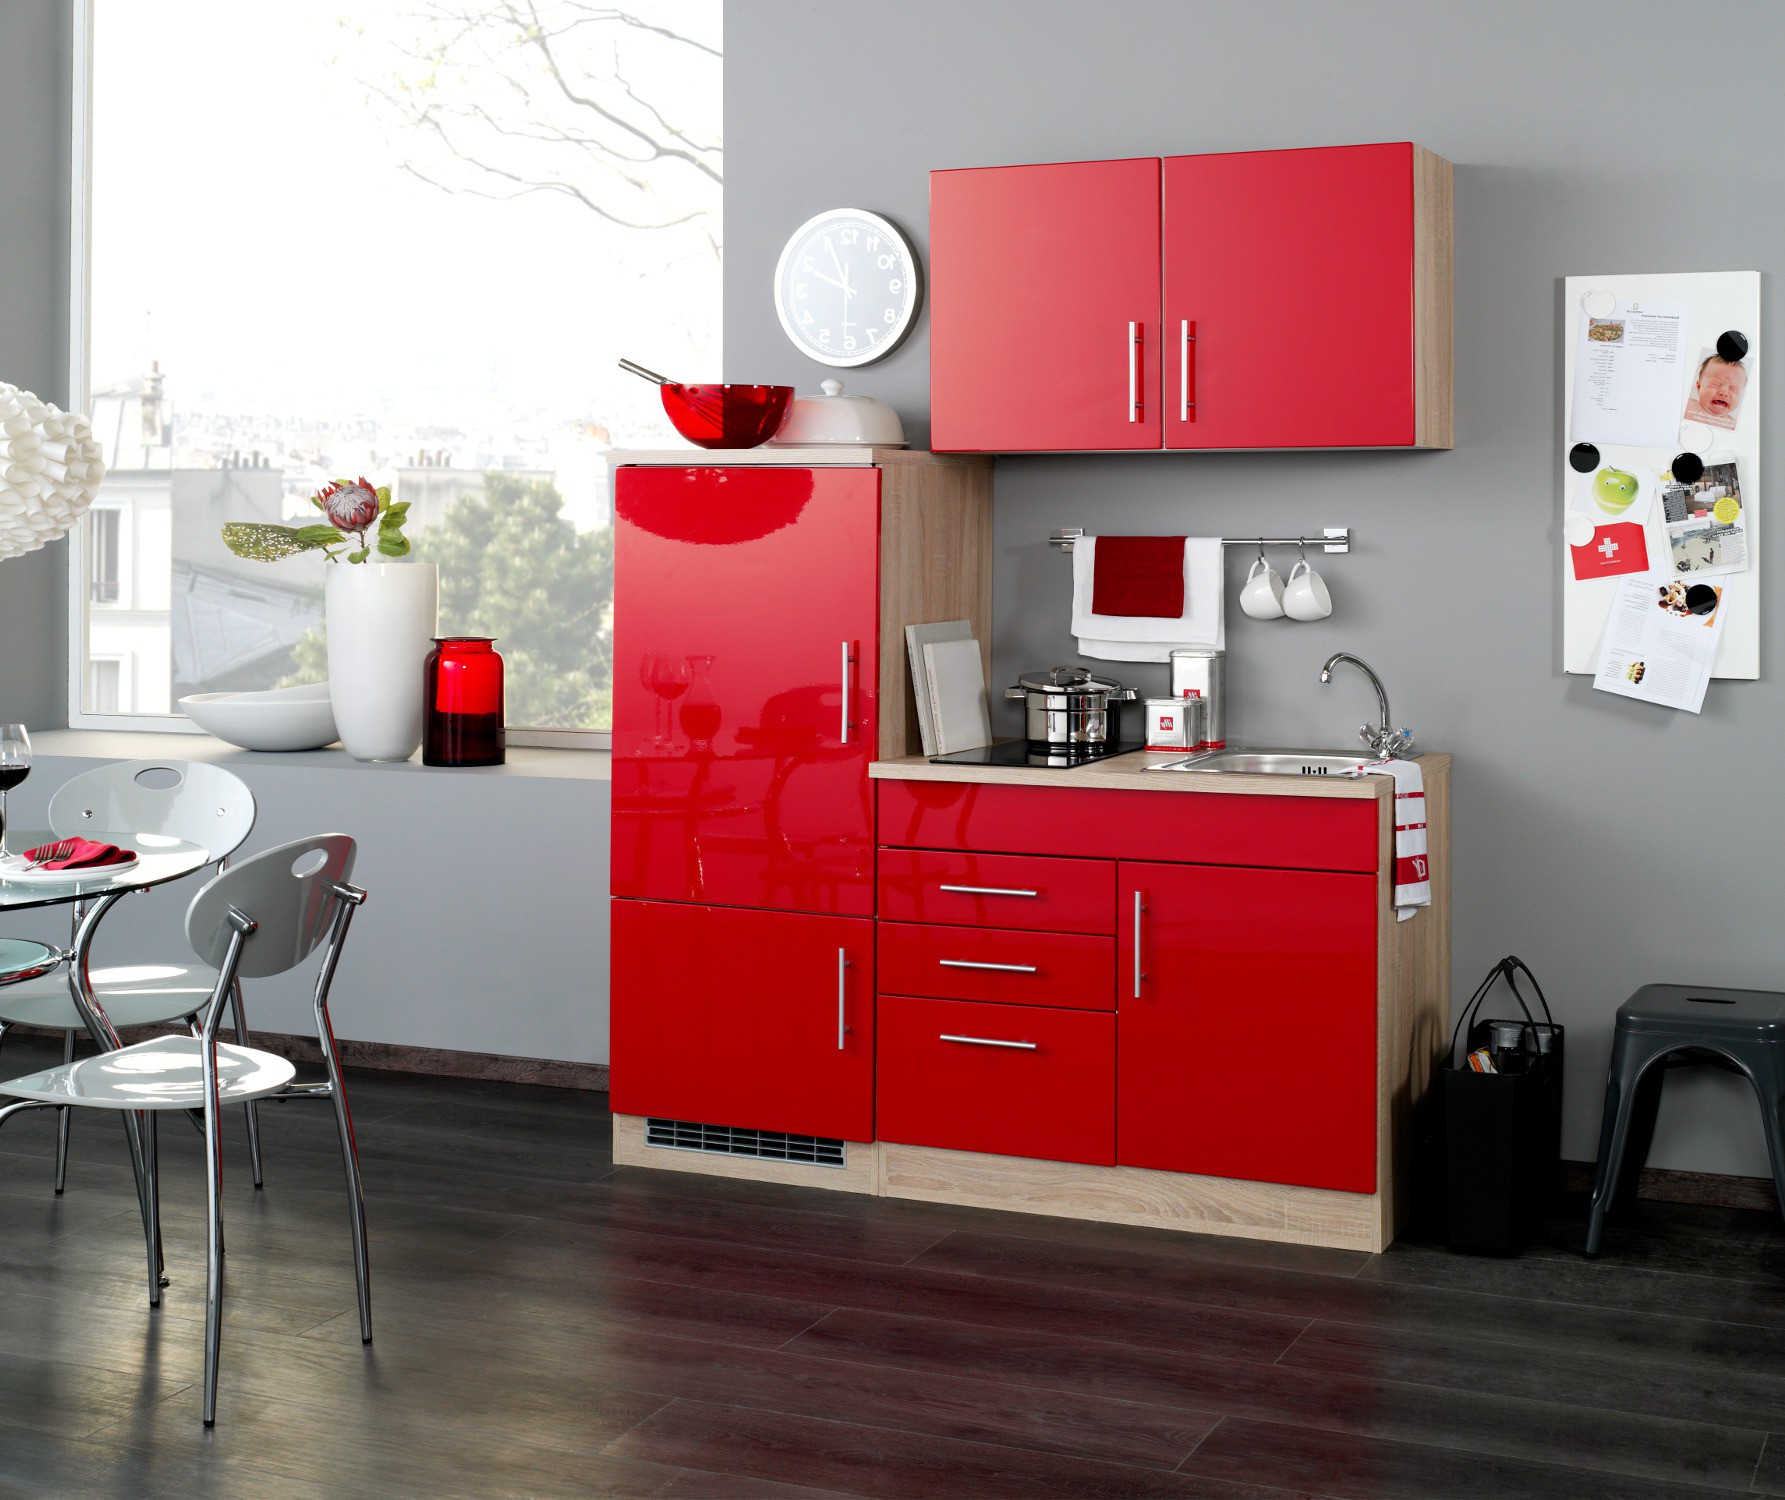 neu singlek che berlin mit glaskeramikkochfeld minik che 160cm rot sonoma ebay. Black Bedroom Furniture Sets. Home Design Ideas